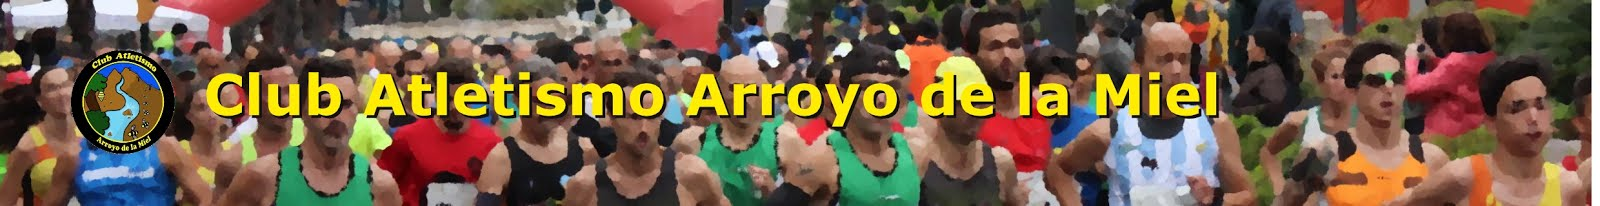 Club de Atletismo Arroyo de la Miel